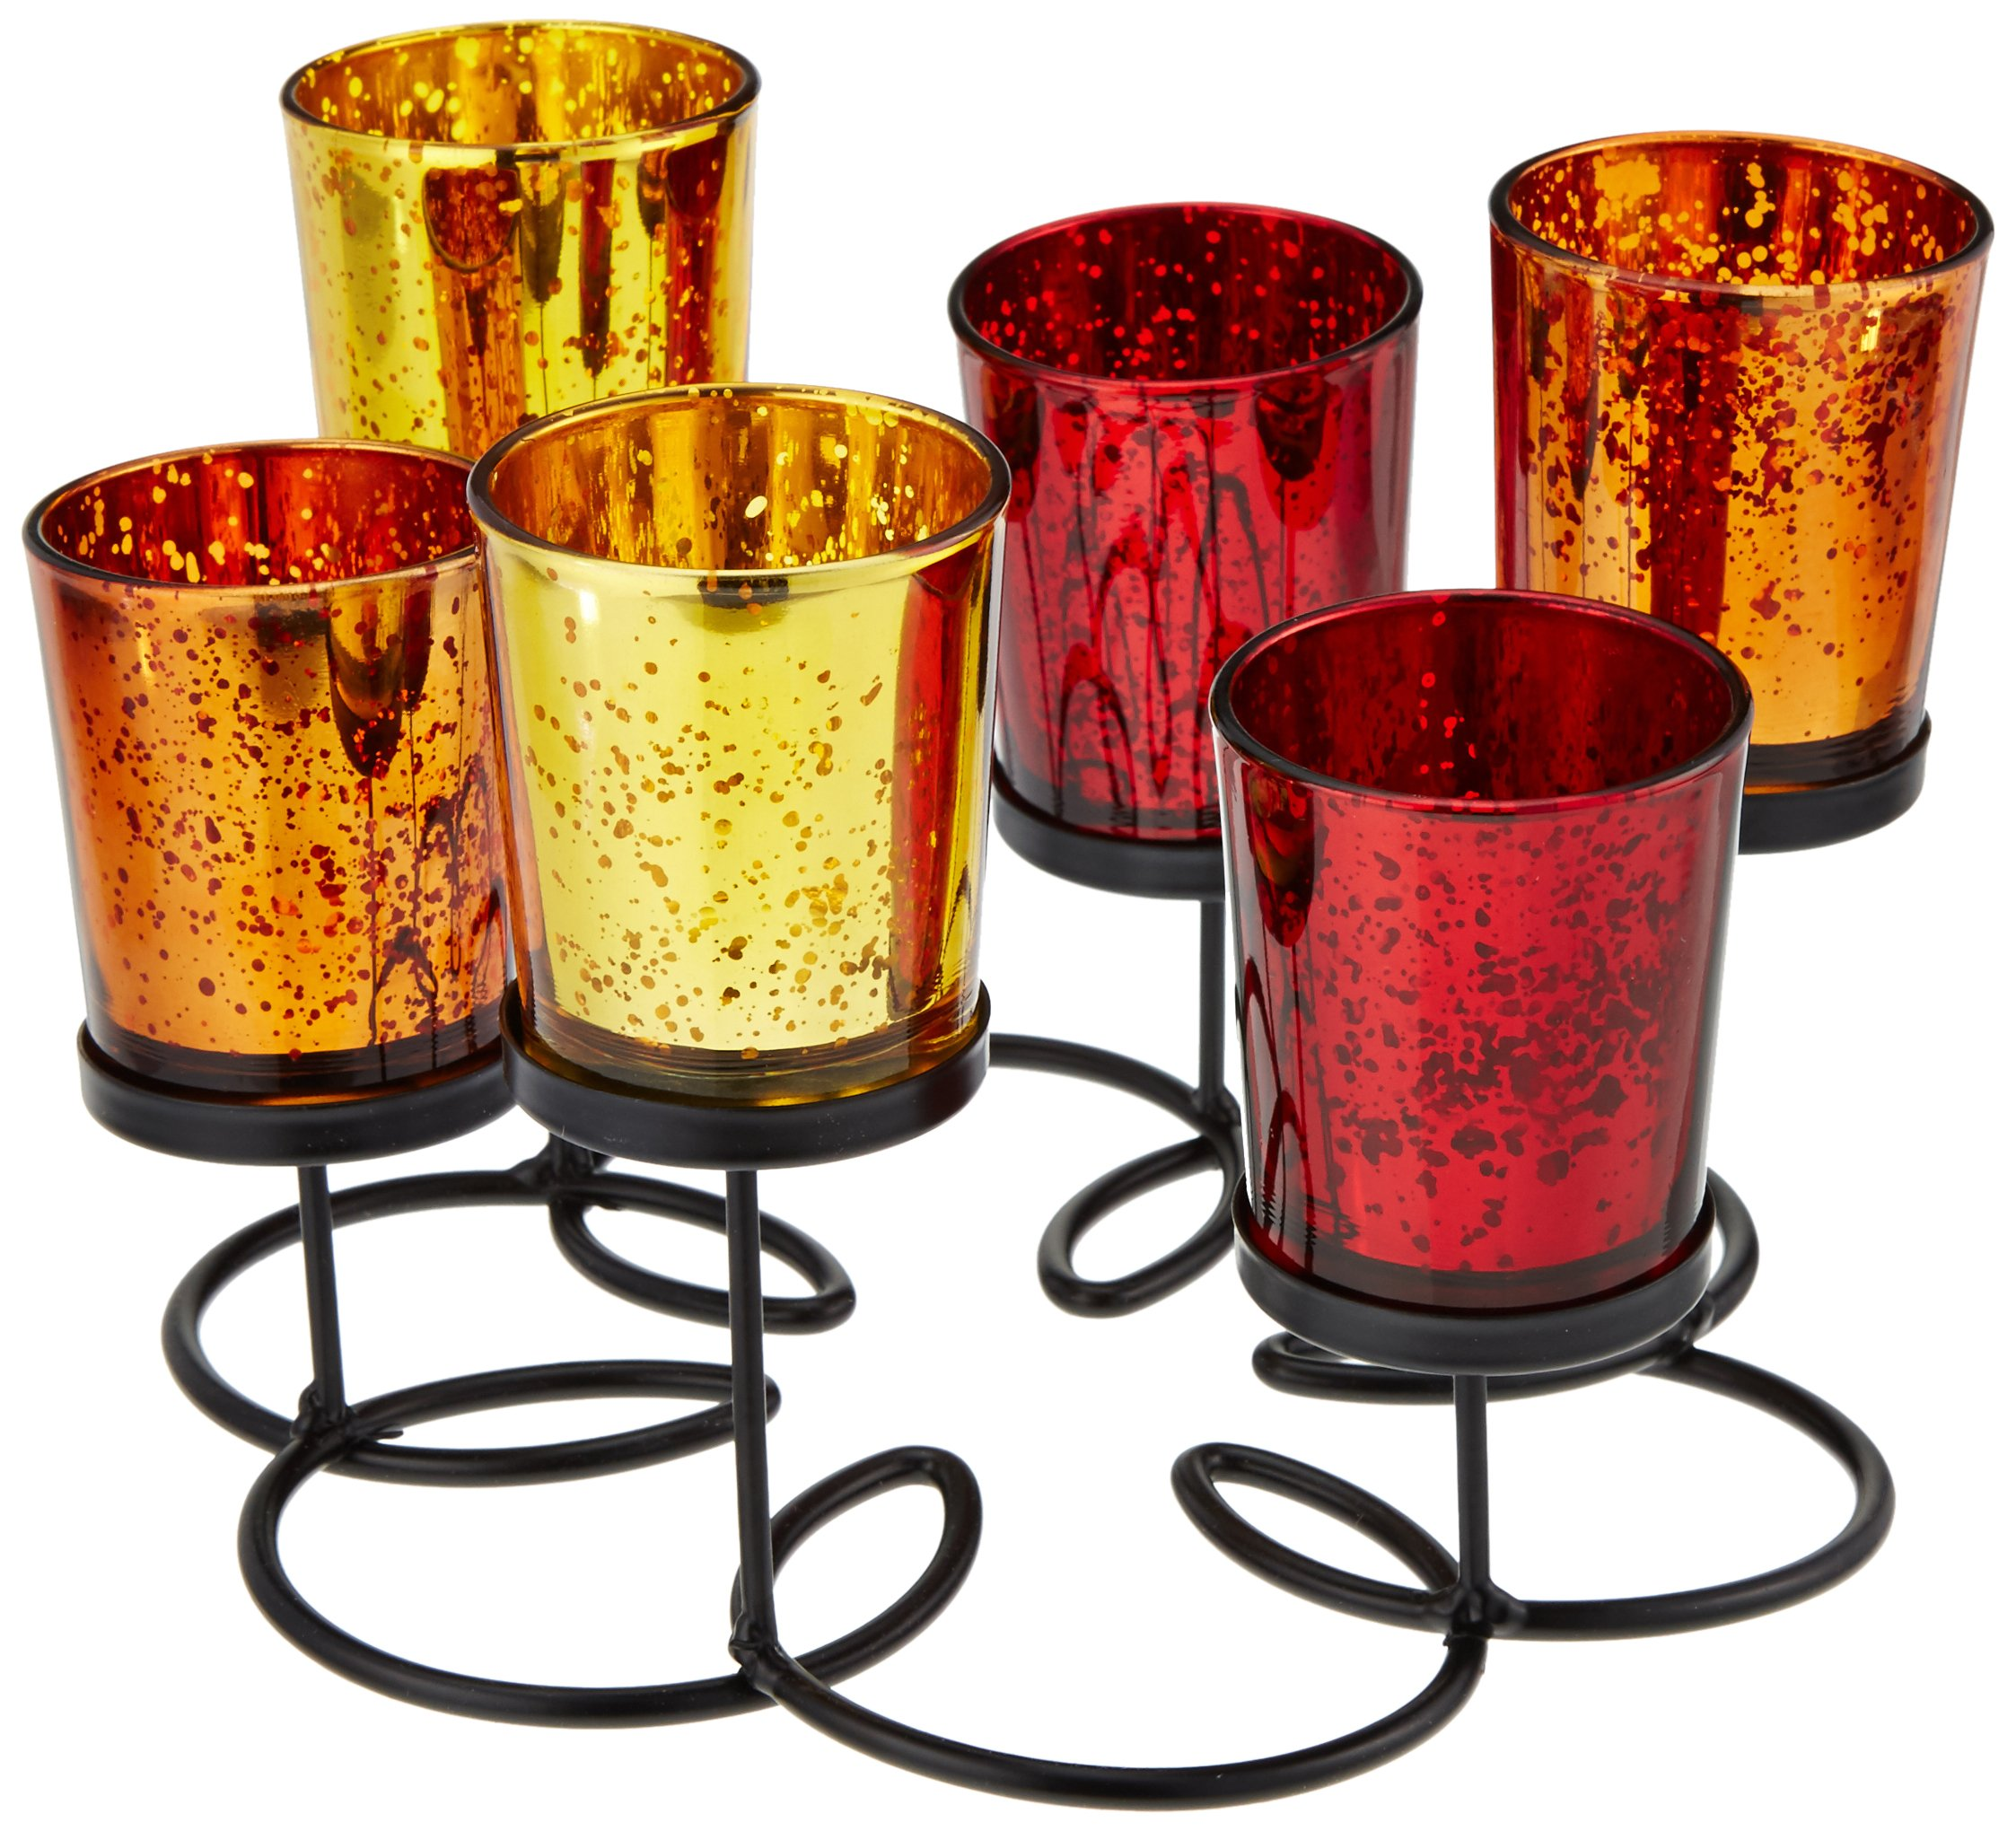 Kole Imports Decorative Wire Pedestal Candle Holder